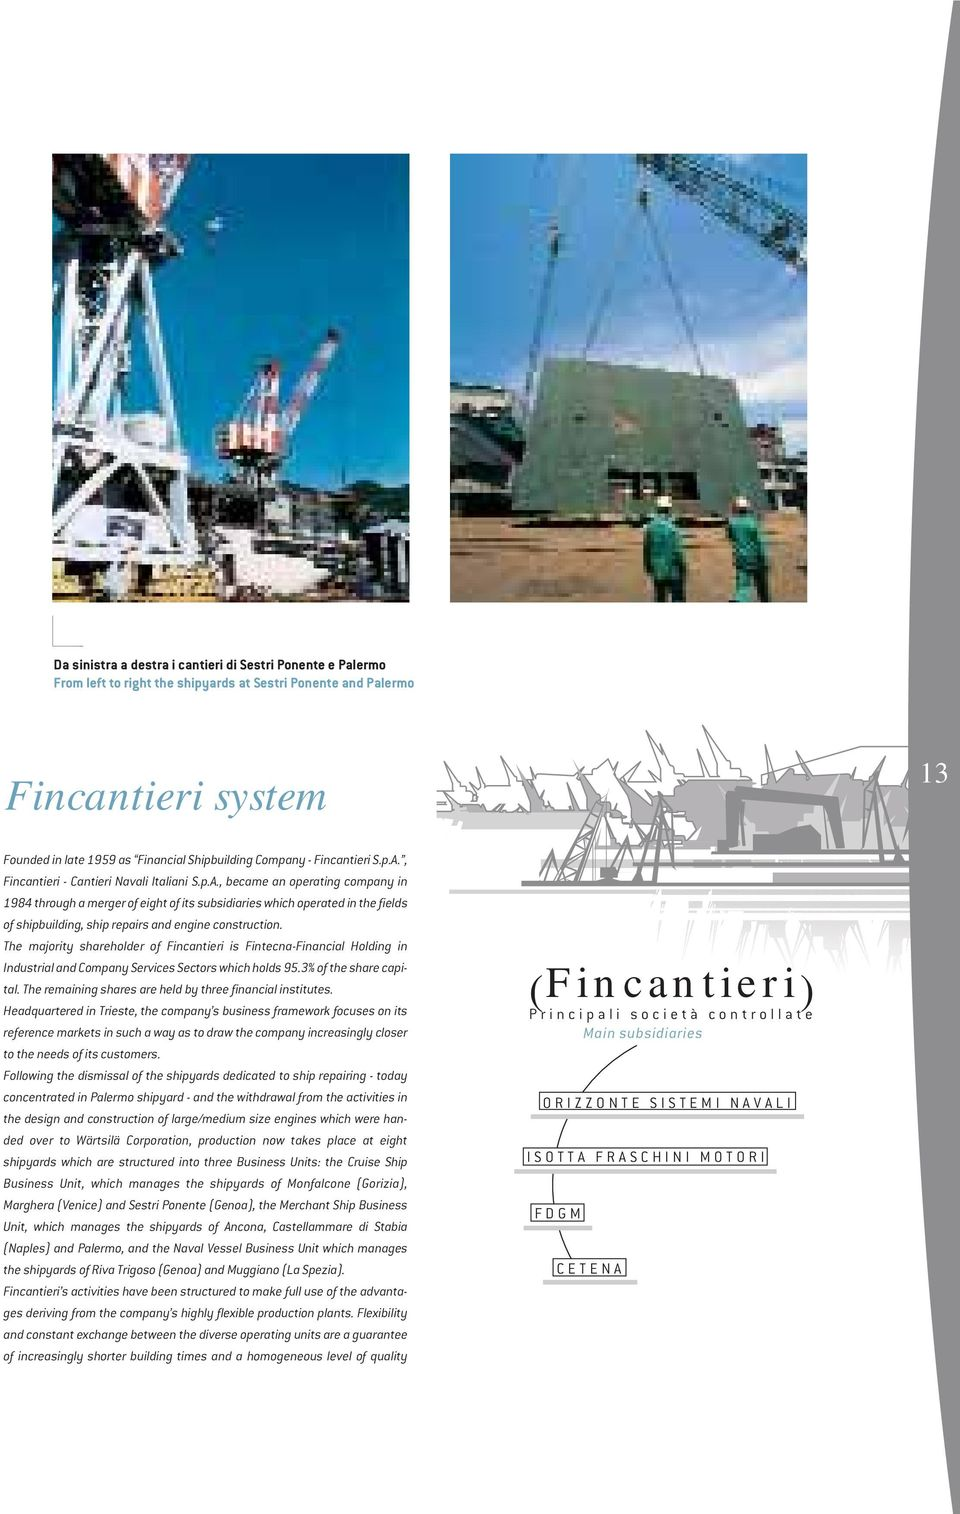 The majority shareholder of Fincantieri is Fintecna-Financial Holding in Industrial and Company Services Sectors which holds 95.3% of the share capital.